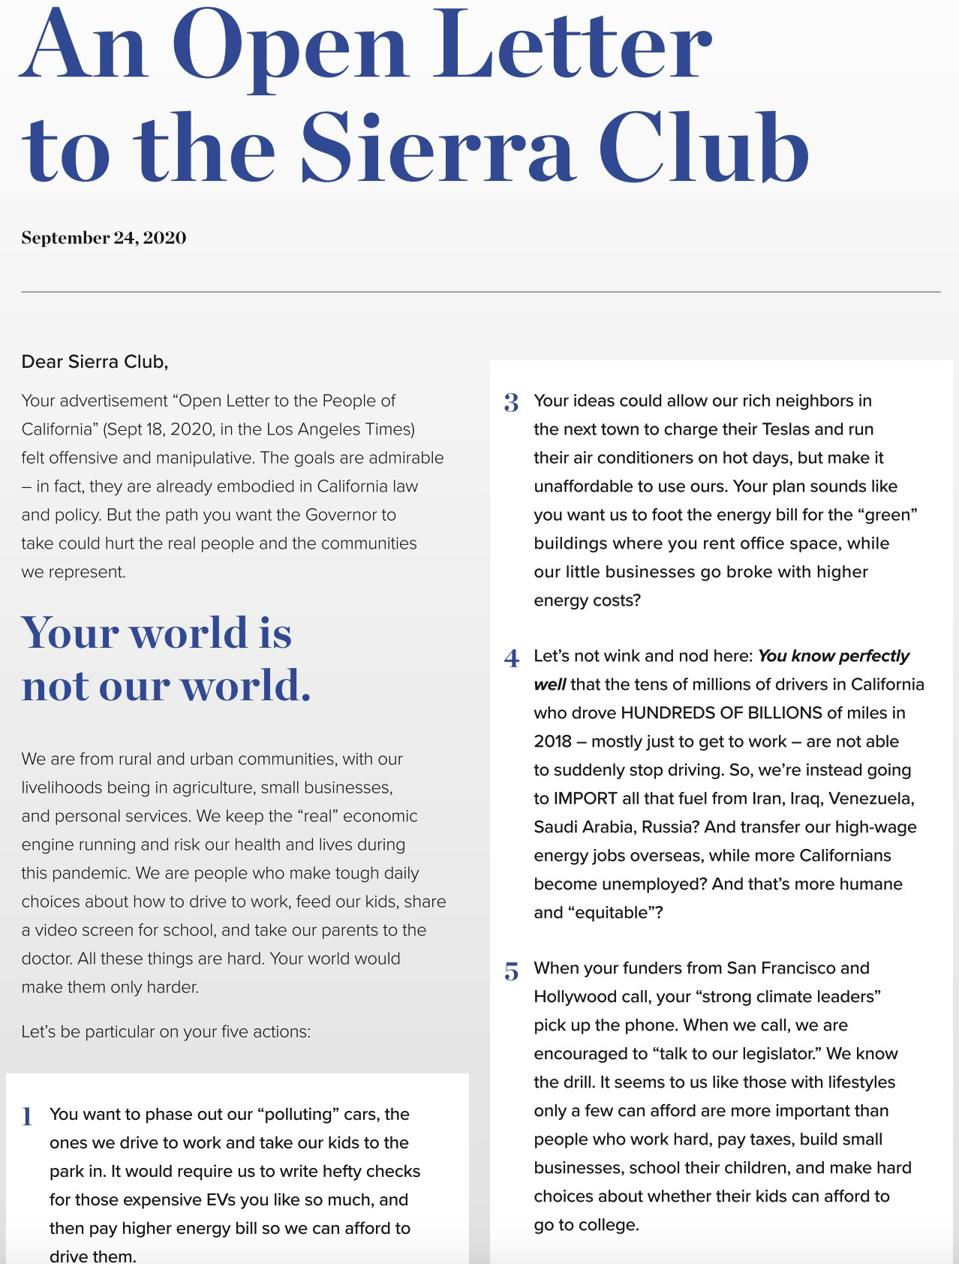 The letter to the Sierra Club said ″Your world is not our world.″